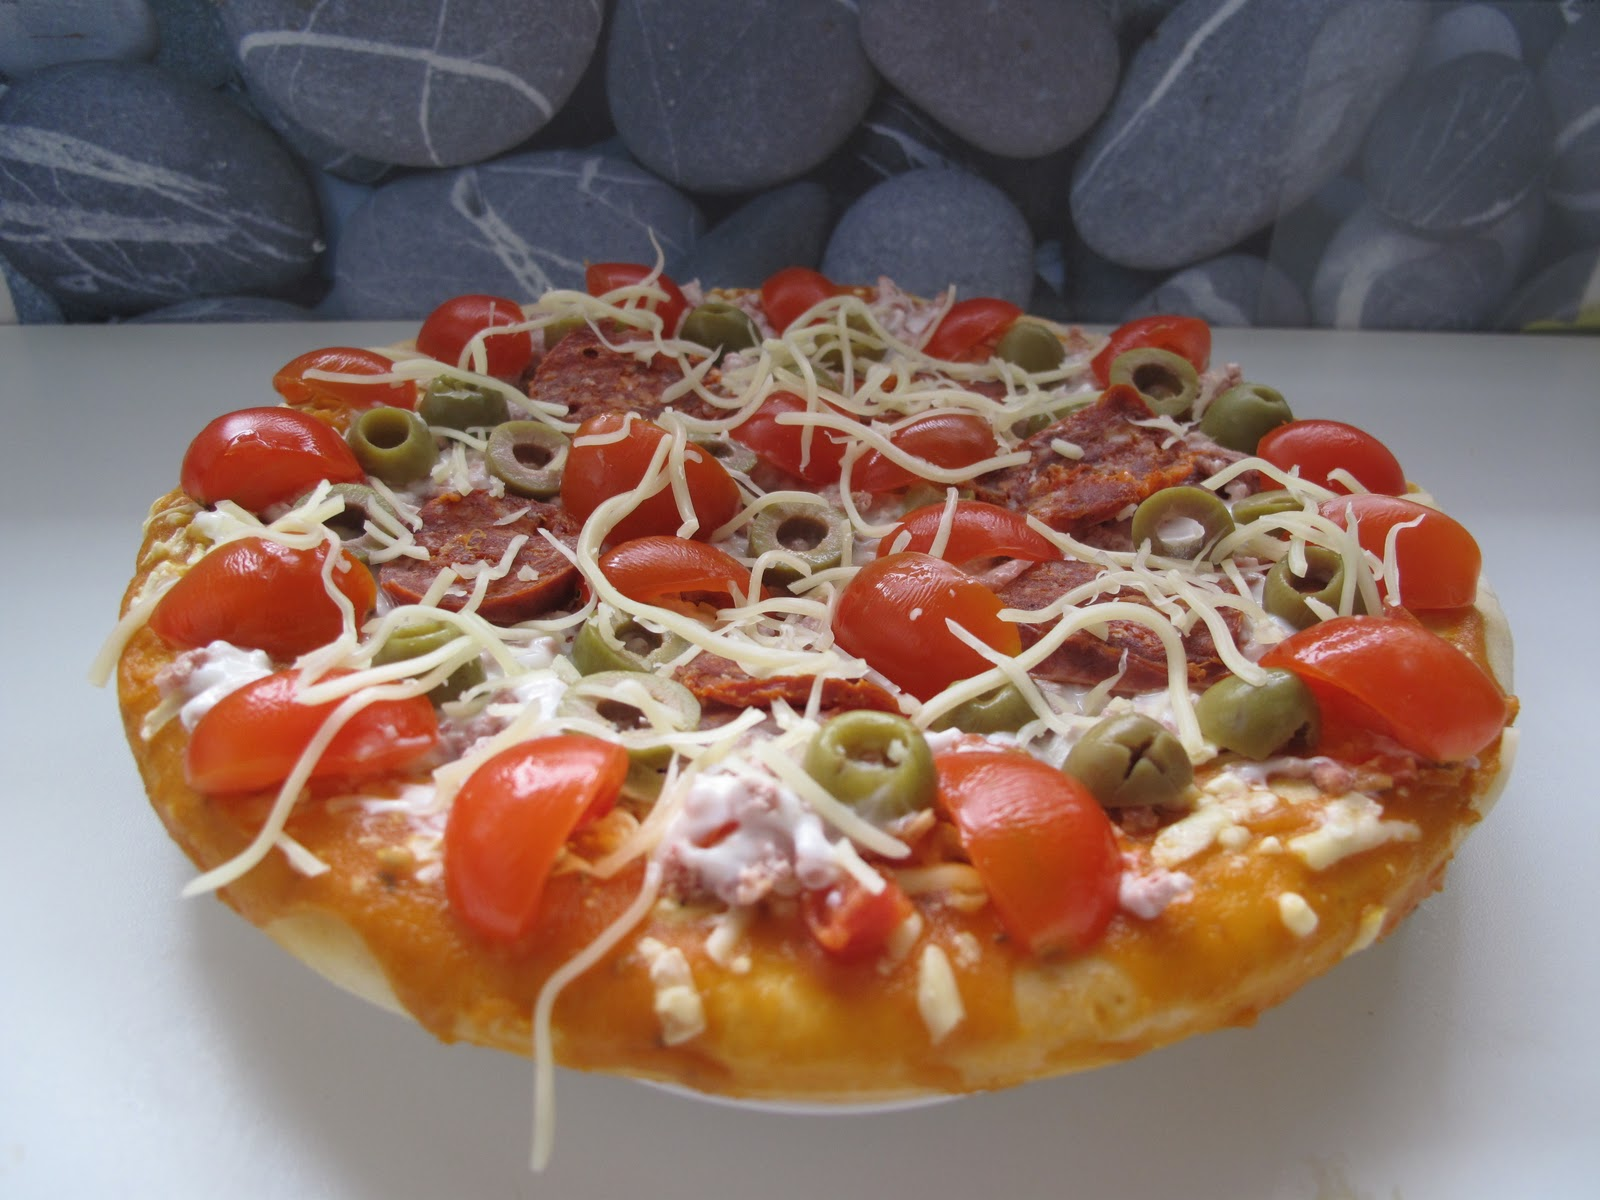 gourmandises homecooked plat pizza du dimanche tomates. Black Bedroom Furniture Sets. Home Design Ideas